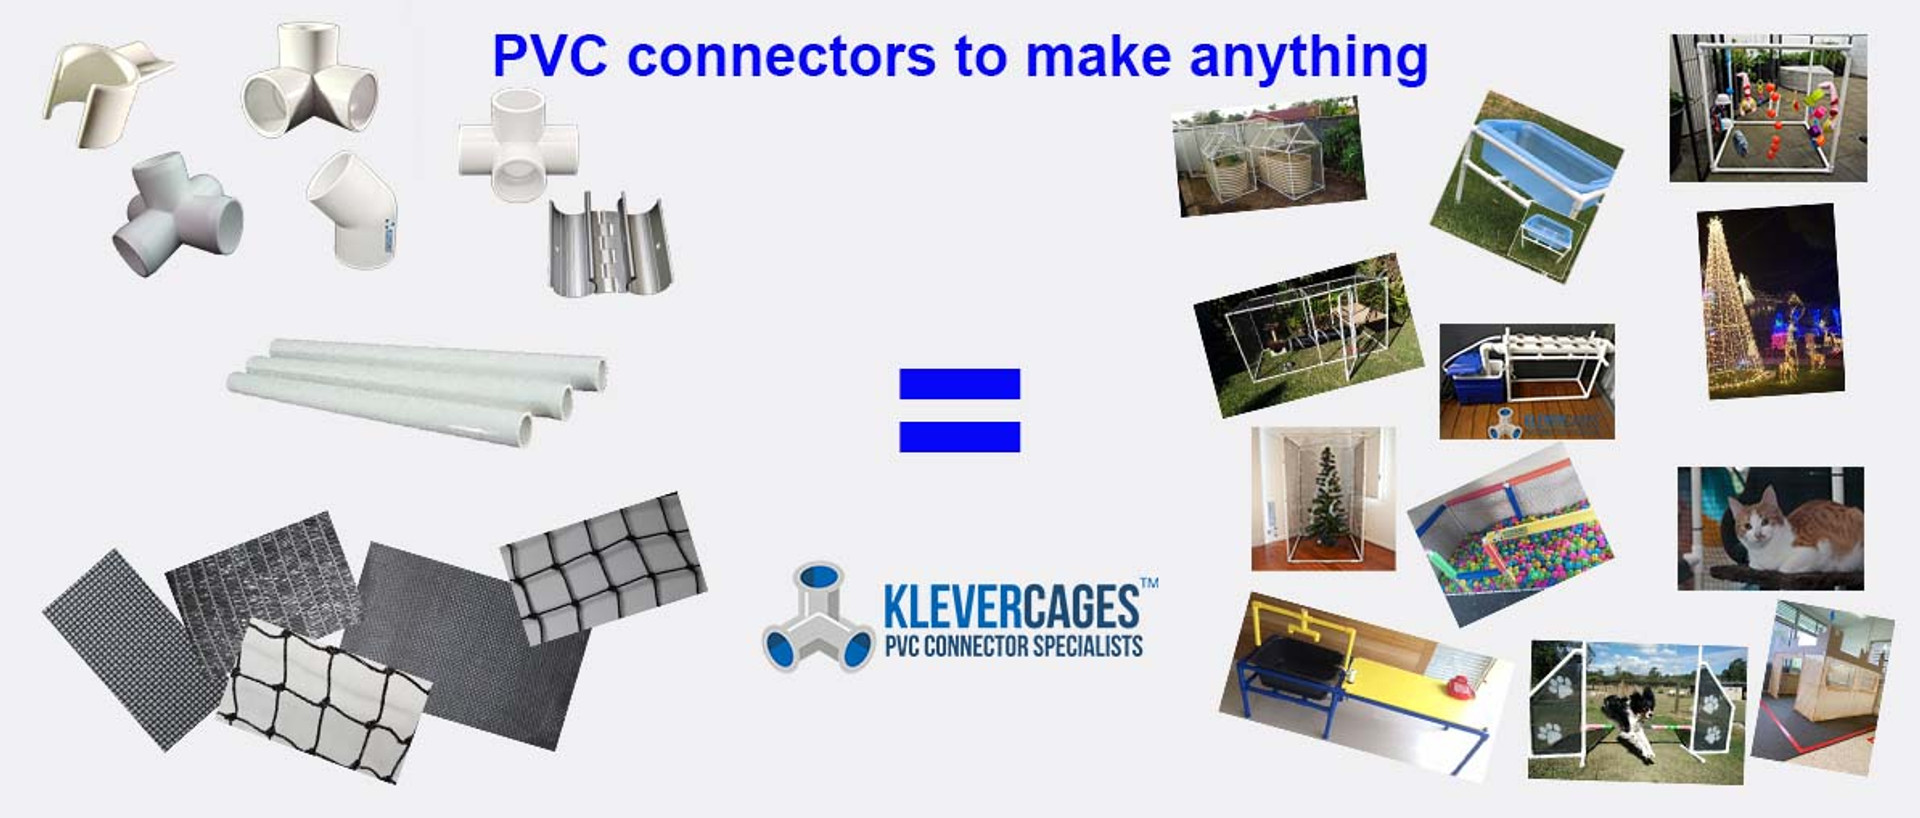 PVC connectors to make anything - Klever Cages